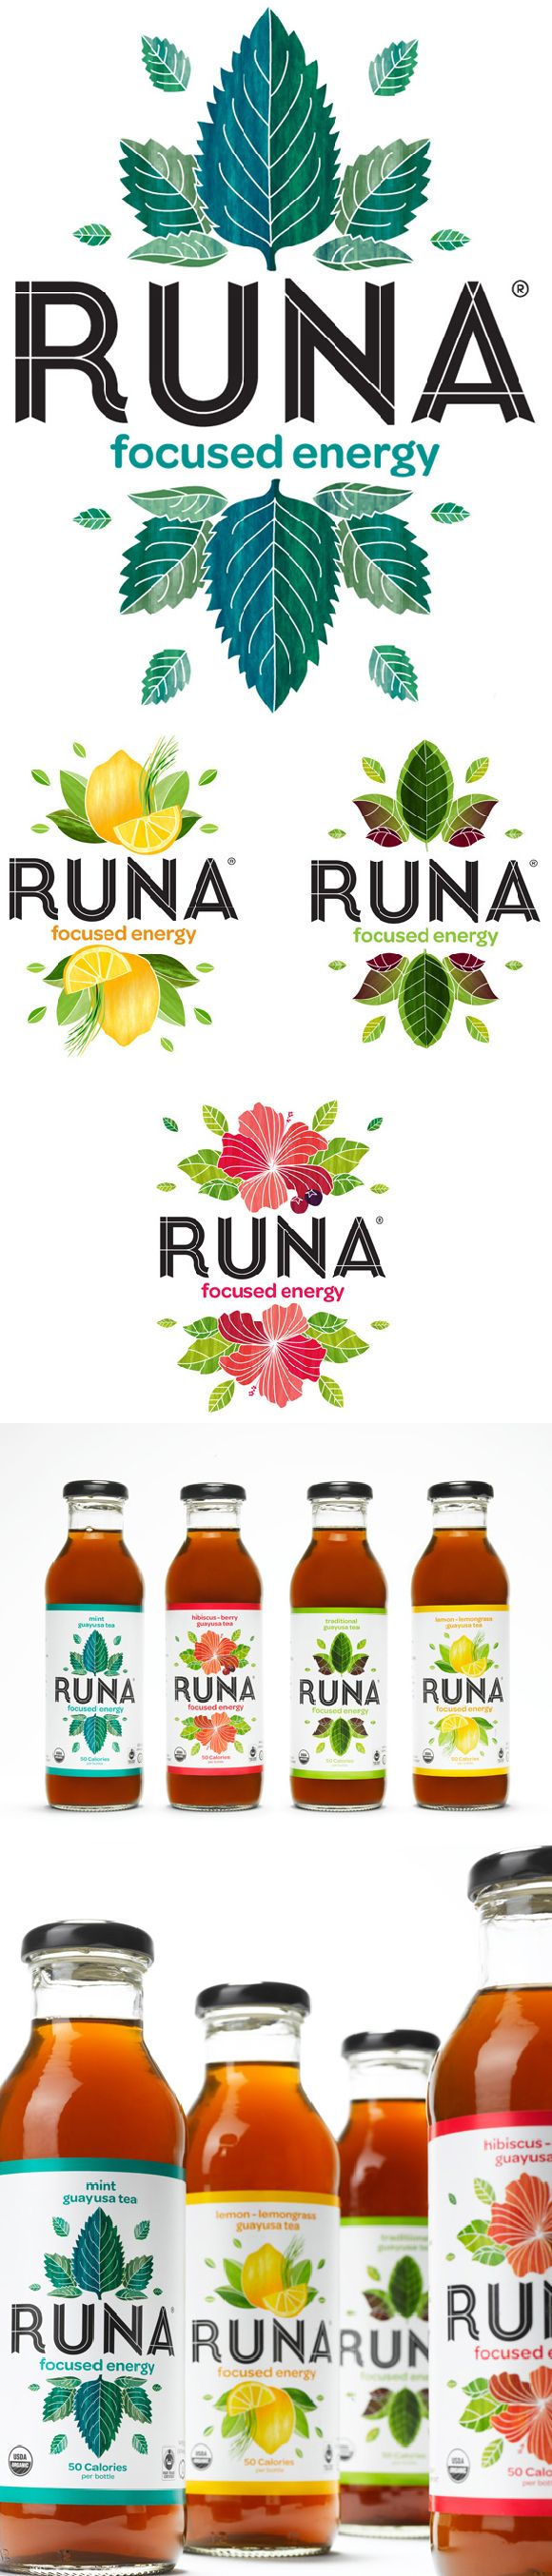 """Runa"" by Mucca Design  #kombuchaguru #juicing Also check out: http://kombuchaguru.com"